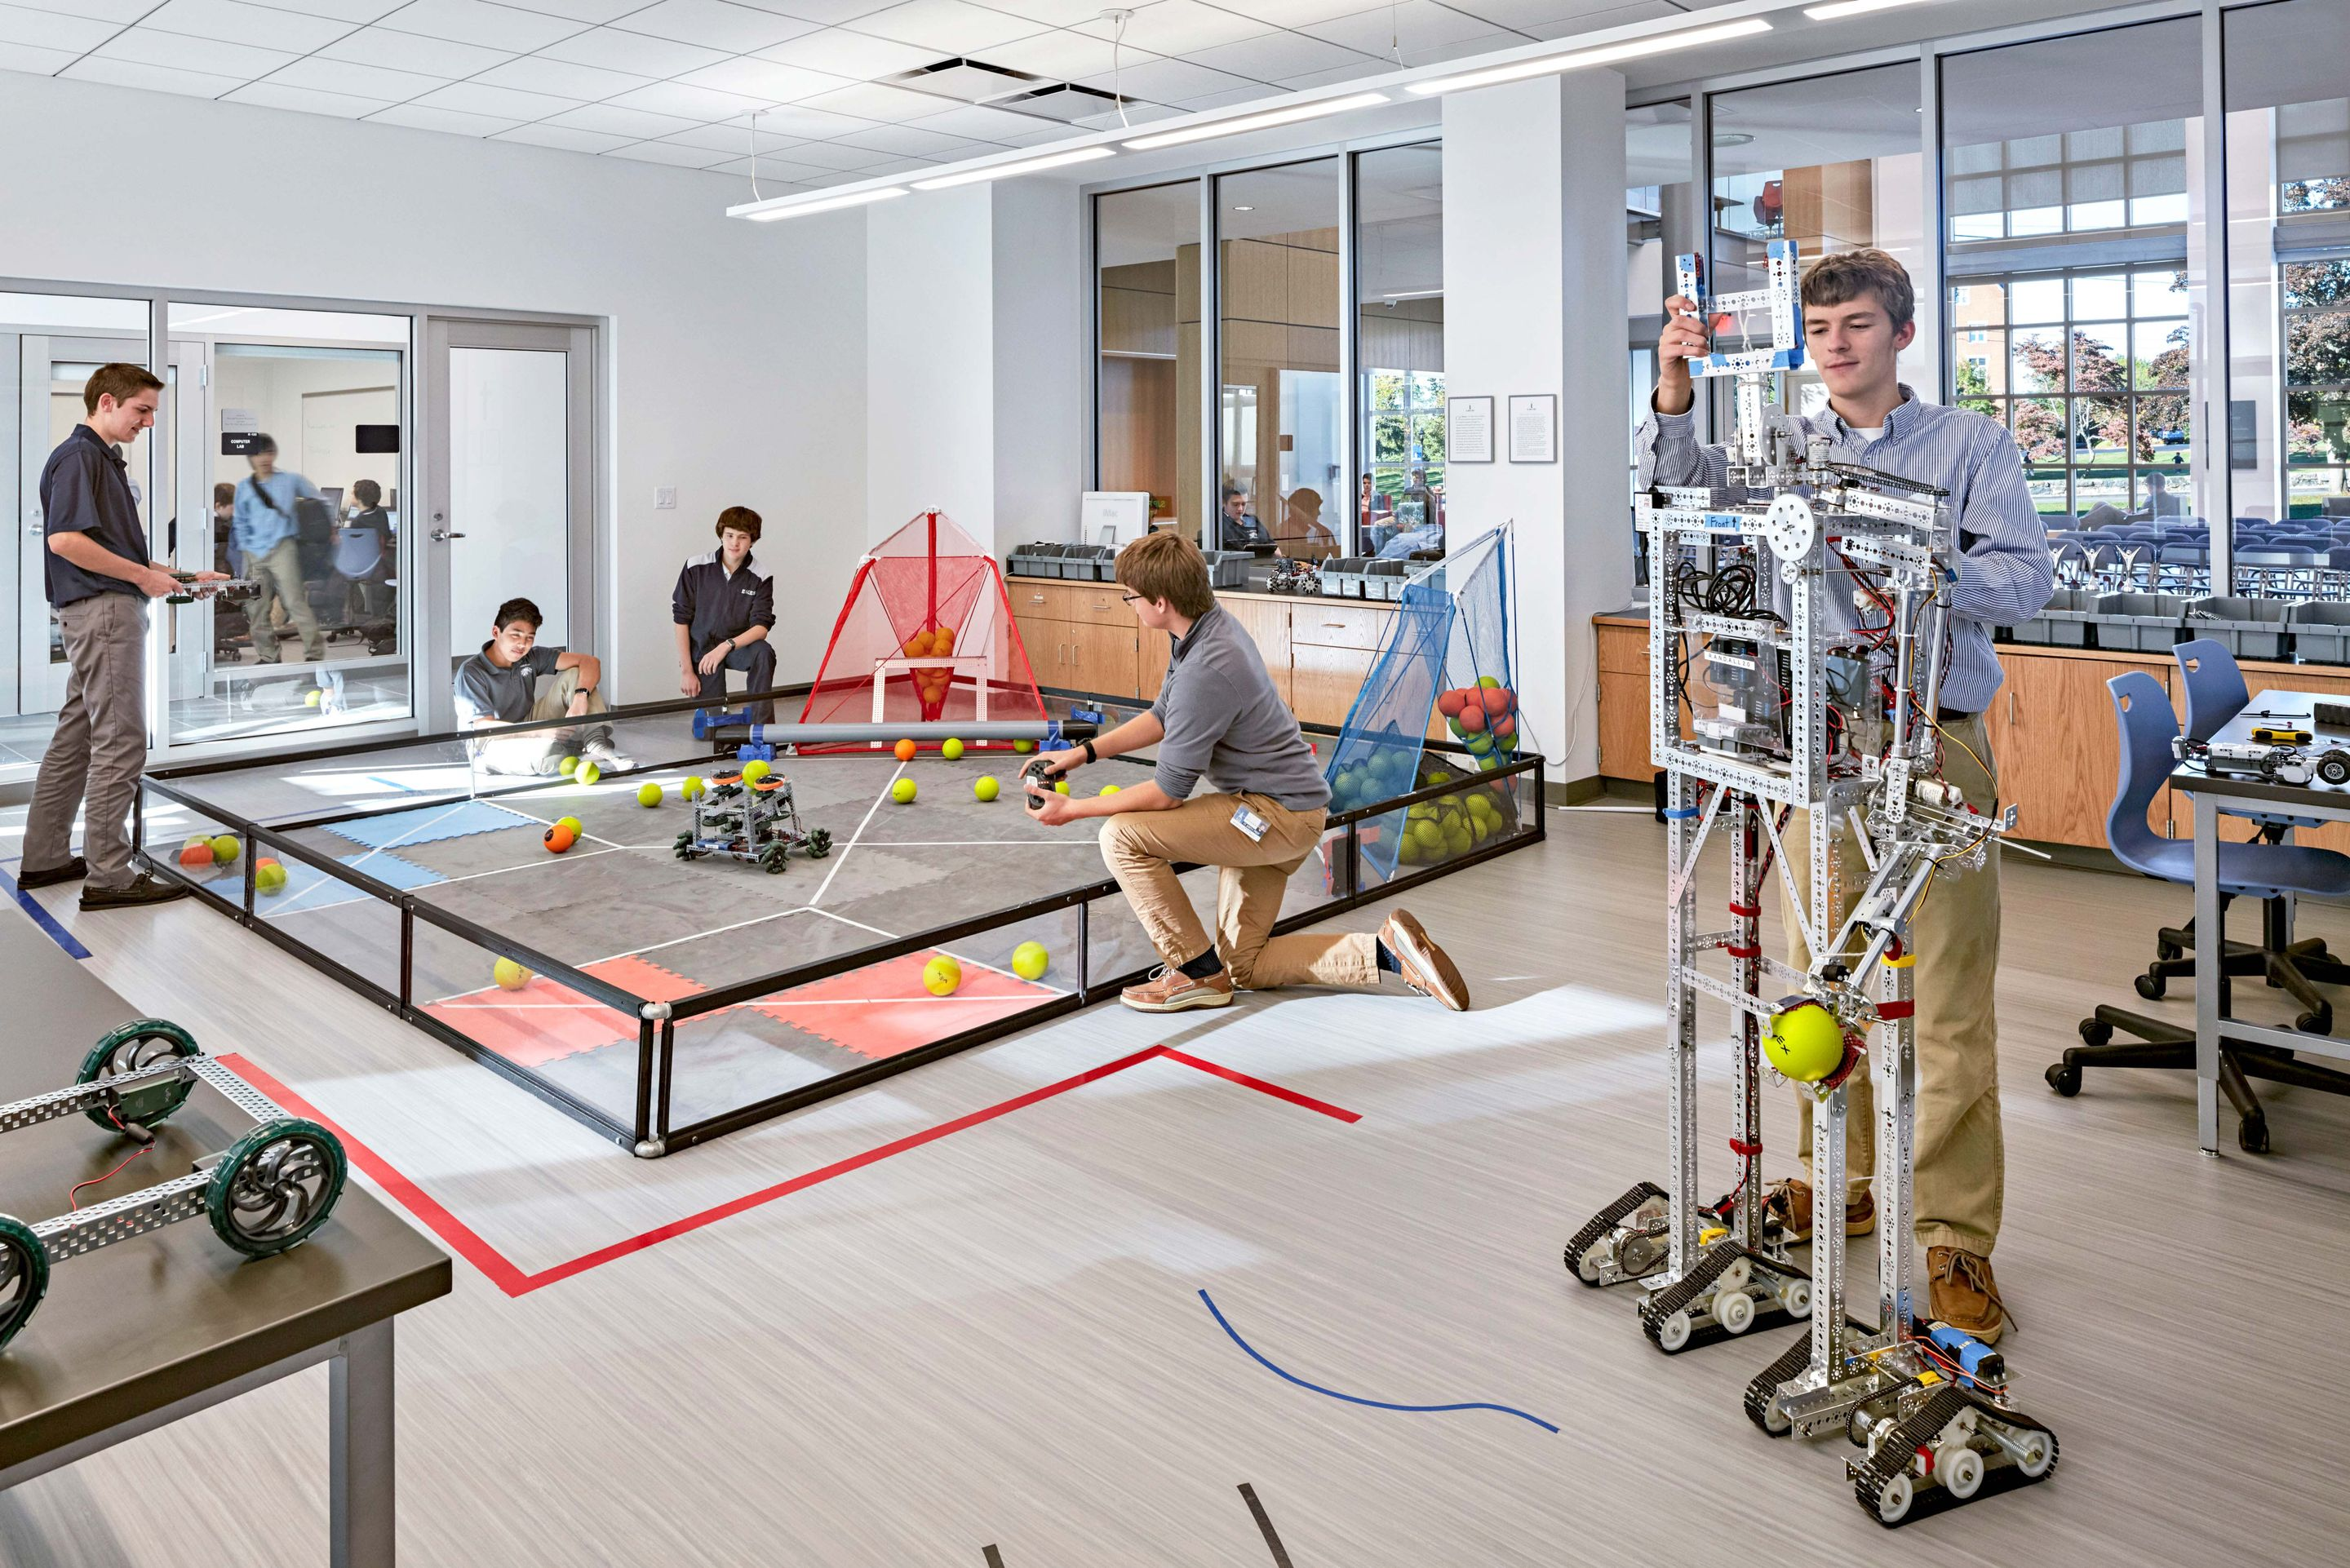 Although it's standard to integrate Wi-Fi and tech throughout a school, there's still a need for rooms with high-tech tools like 3D printers. St. John's Prep, a private school, has a robotics lab as part of its STEM commons.